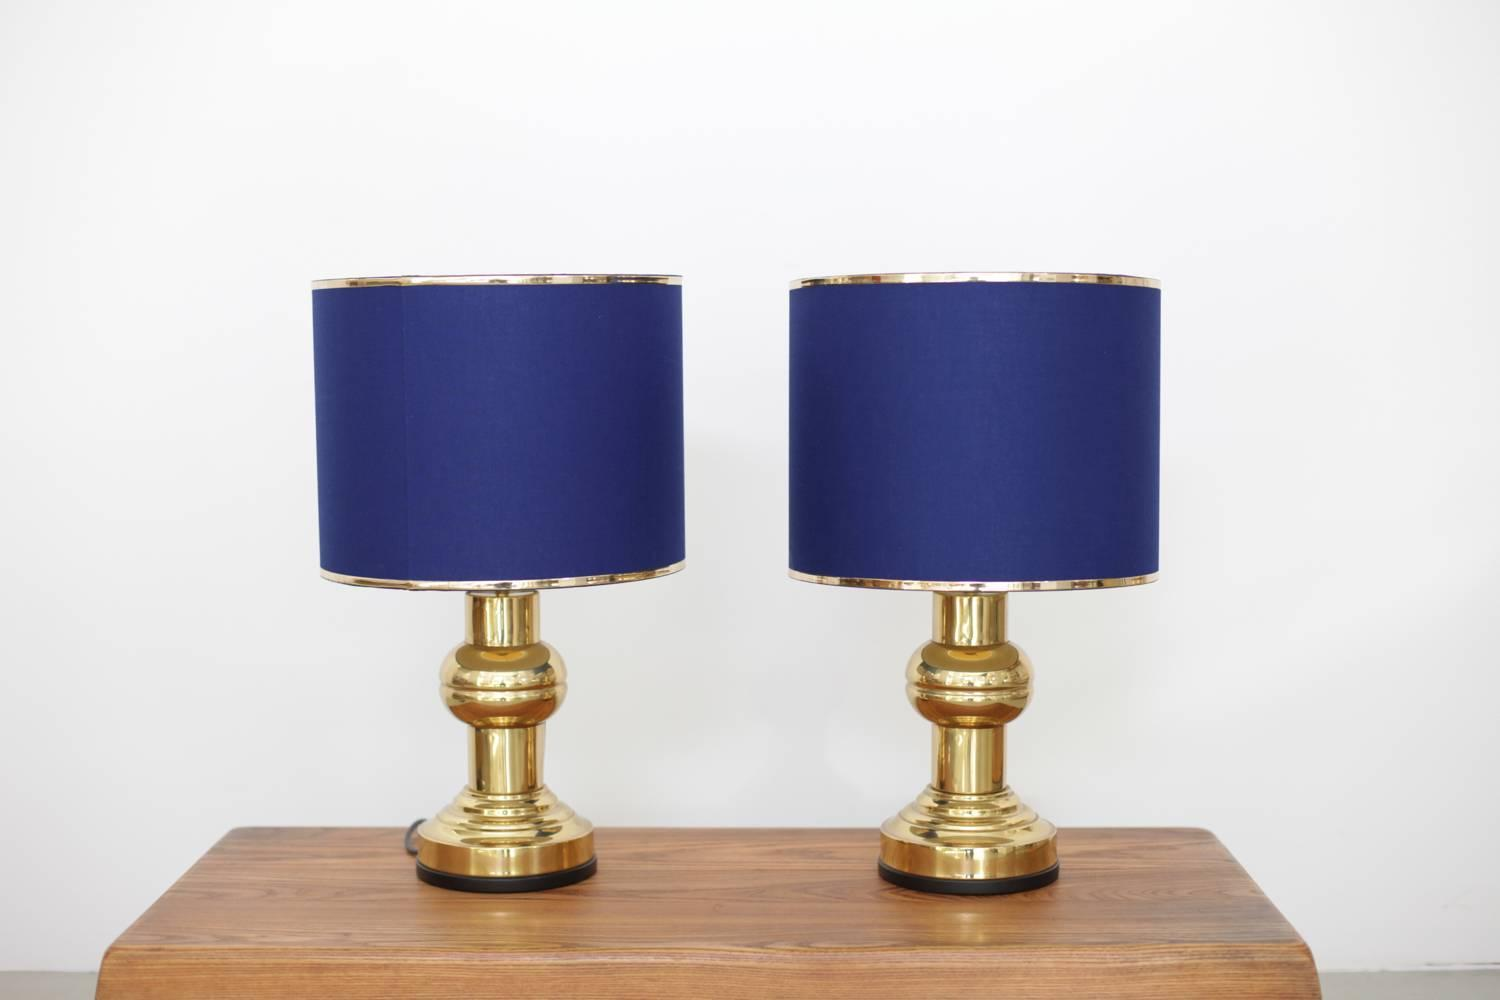 set of two art deco style table lamps in brass with dark blue shades. Black Bedroom Furniture Sets. Home Design Ideas